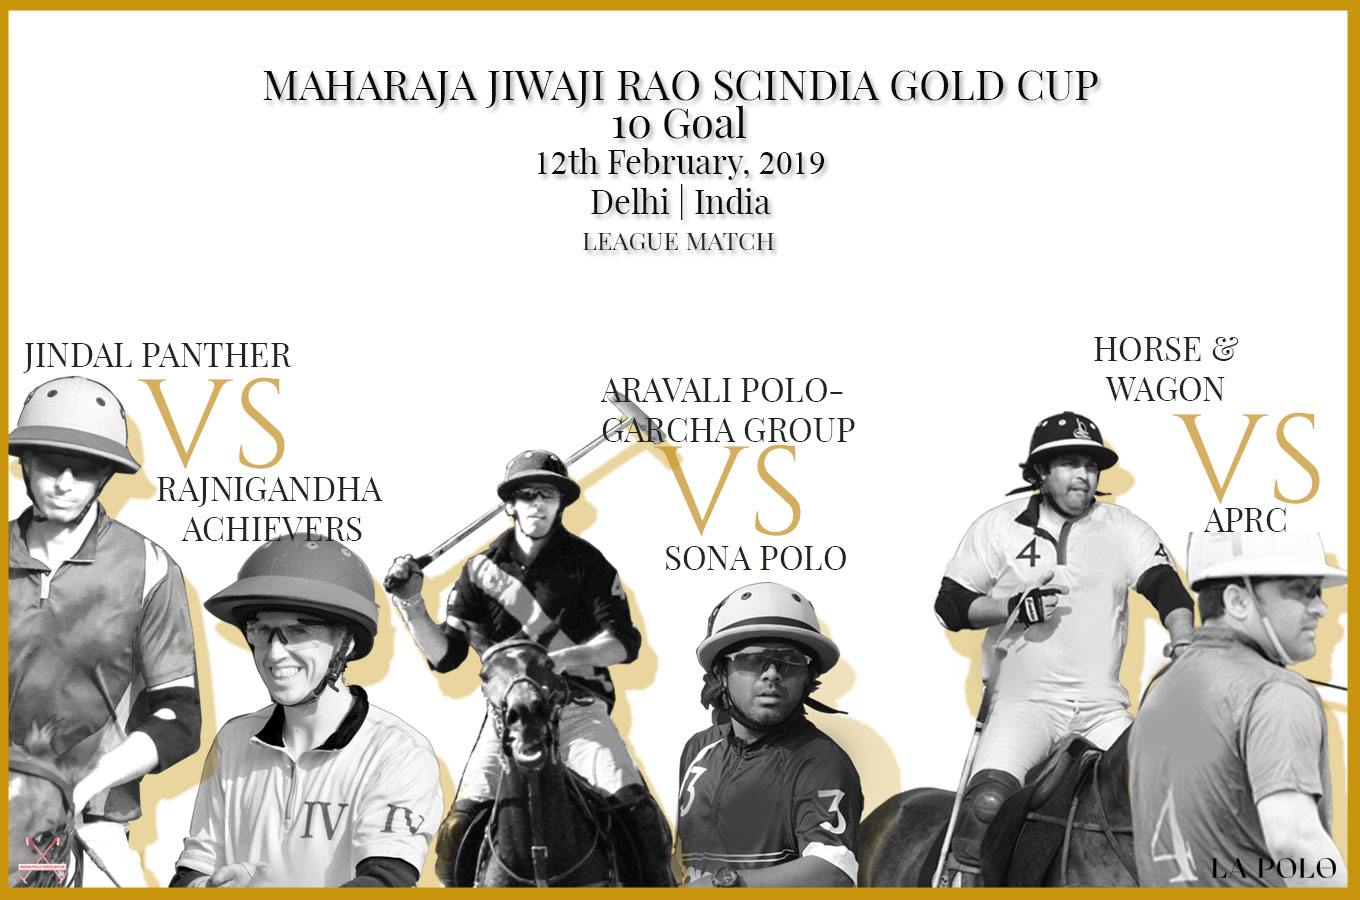 Second Day of Maharaja Jiwaji Rao Scindia Gold Cup?